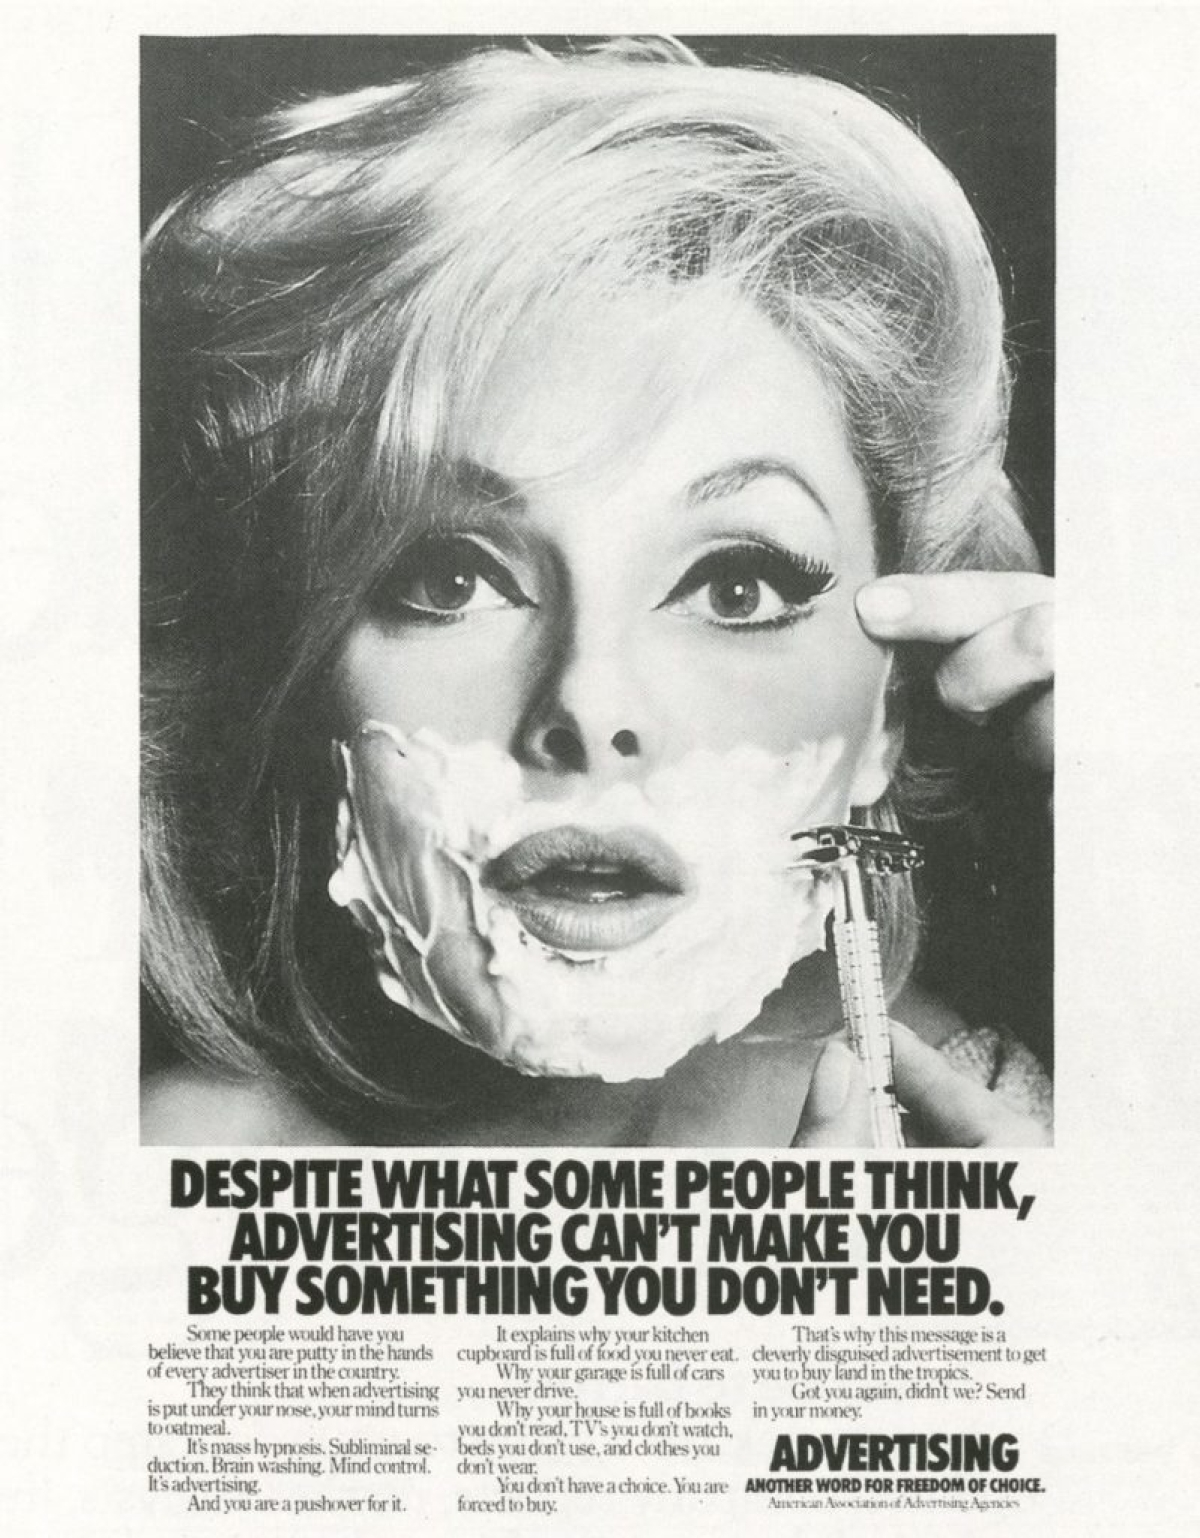 An ad about advertising by the American Association of Advertising Agencies